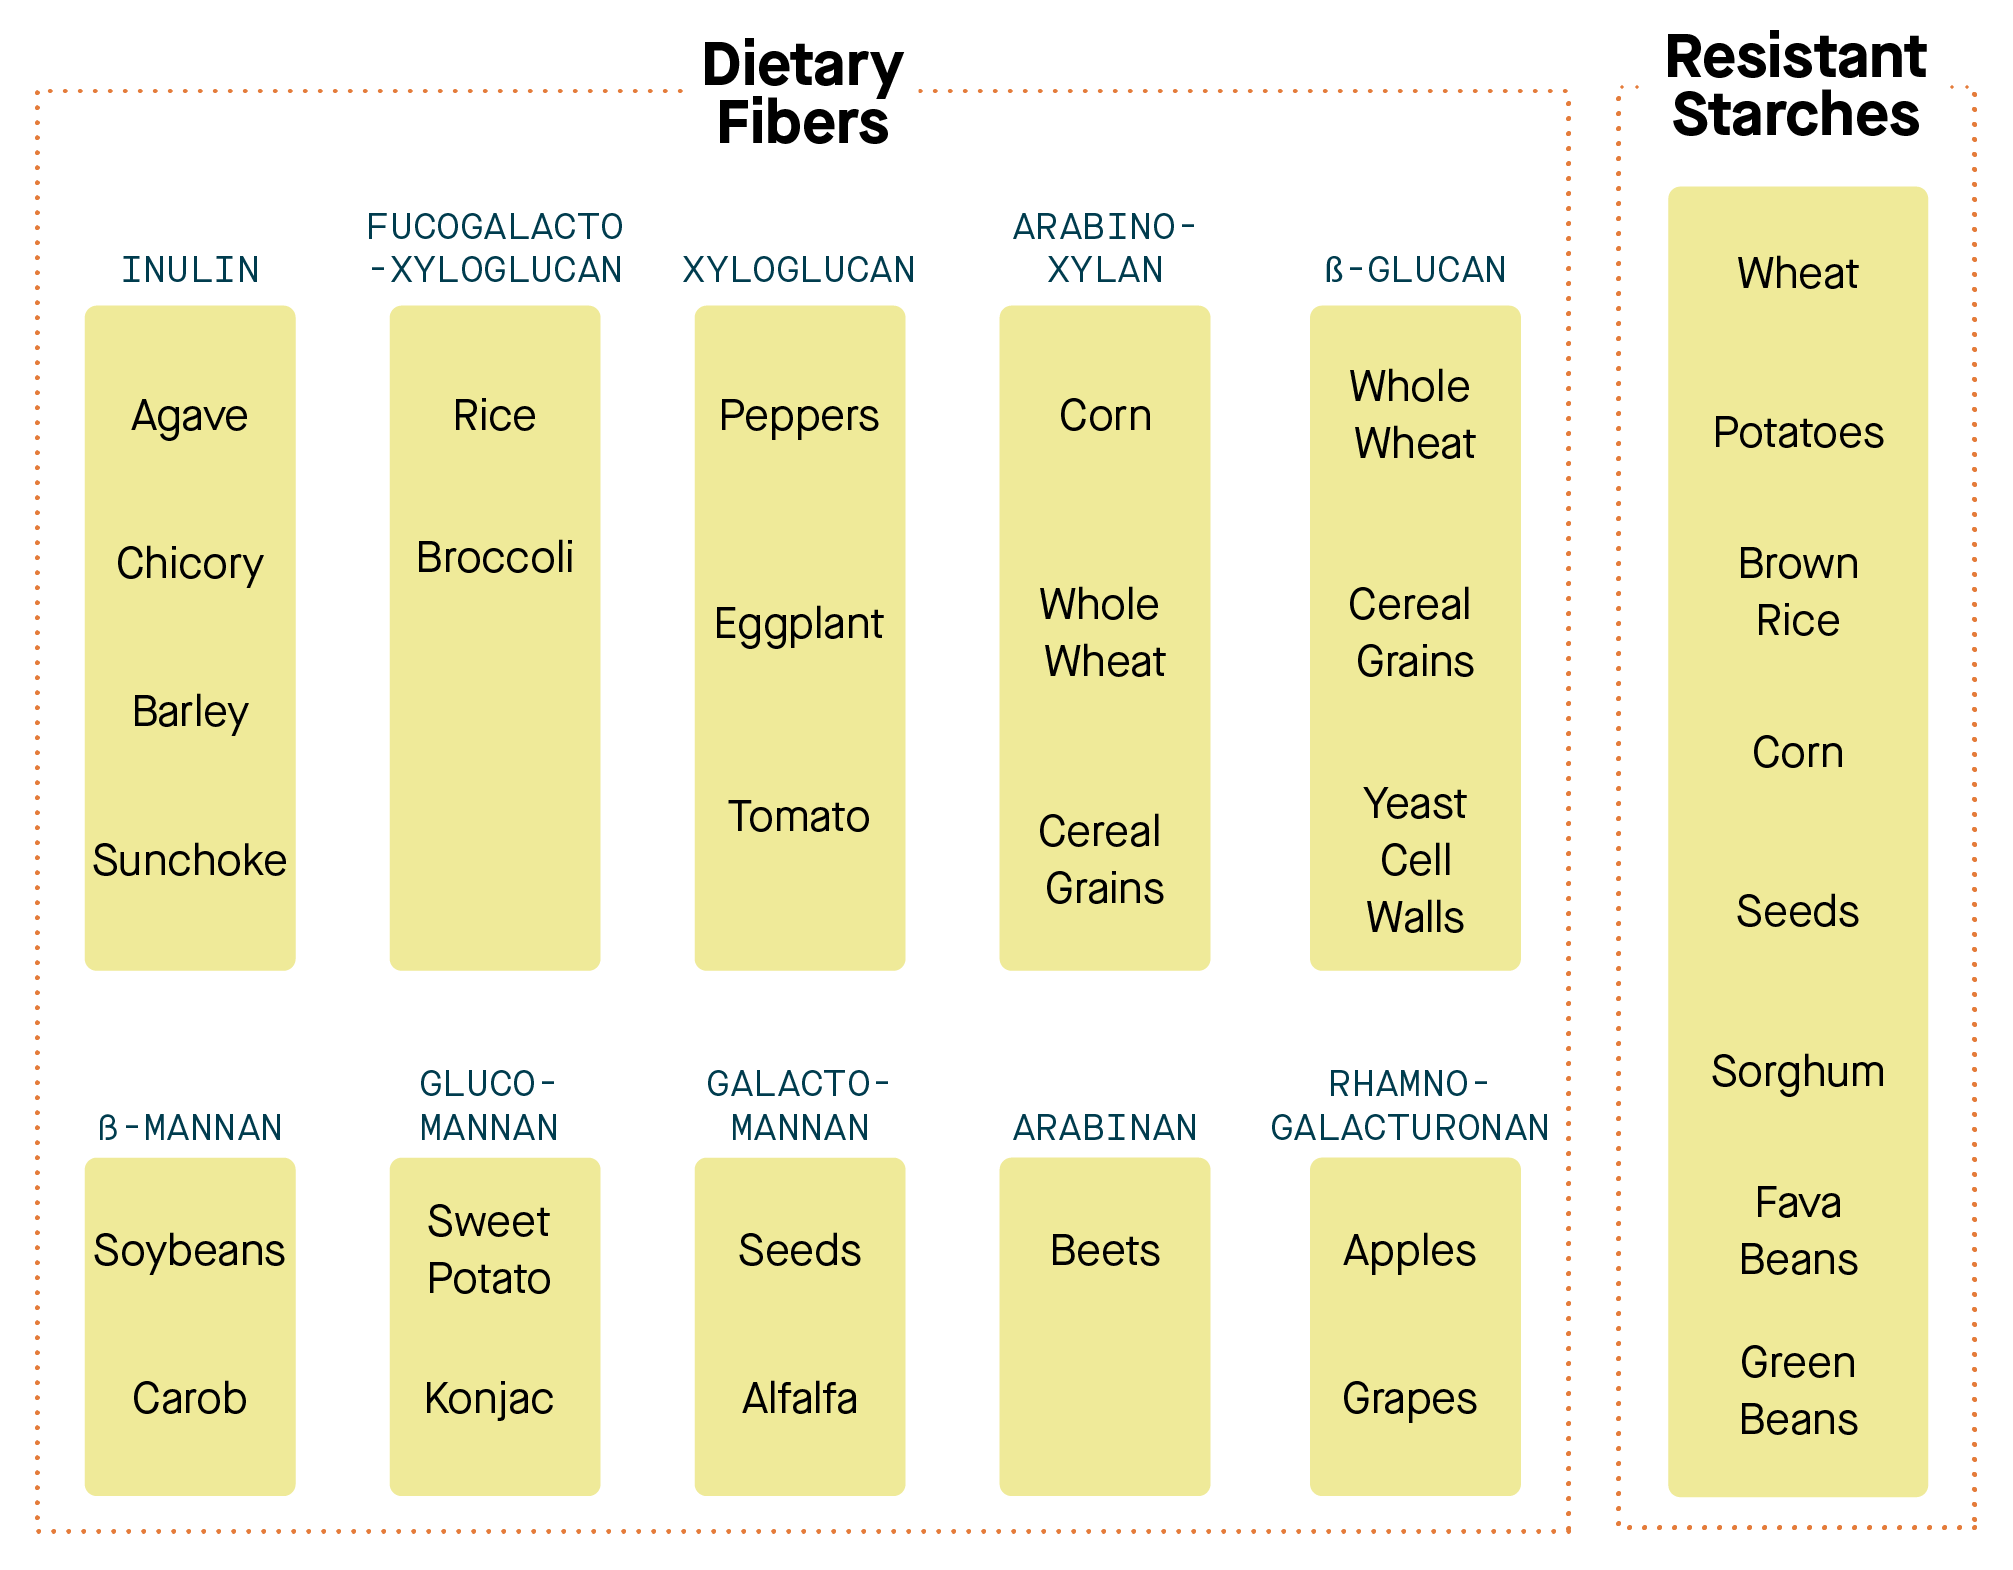 Sources of dietary fiber and resistant starch